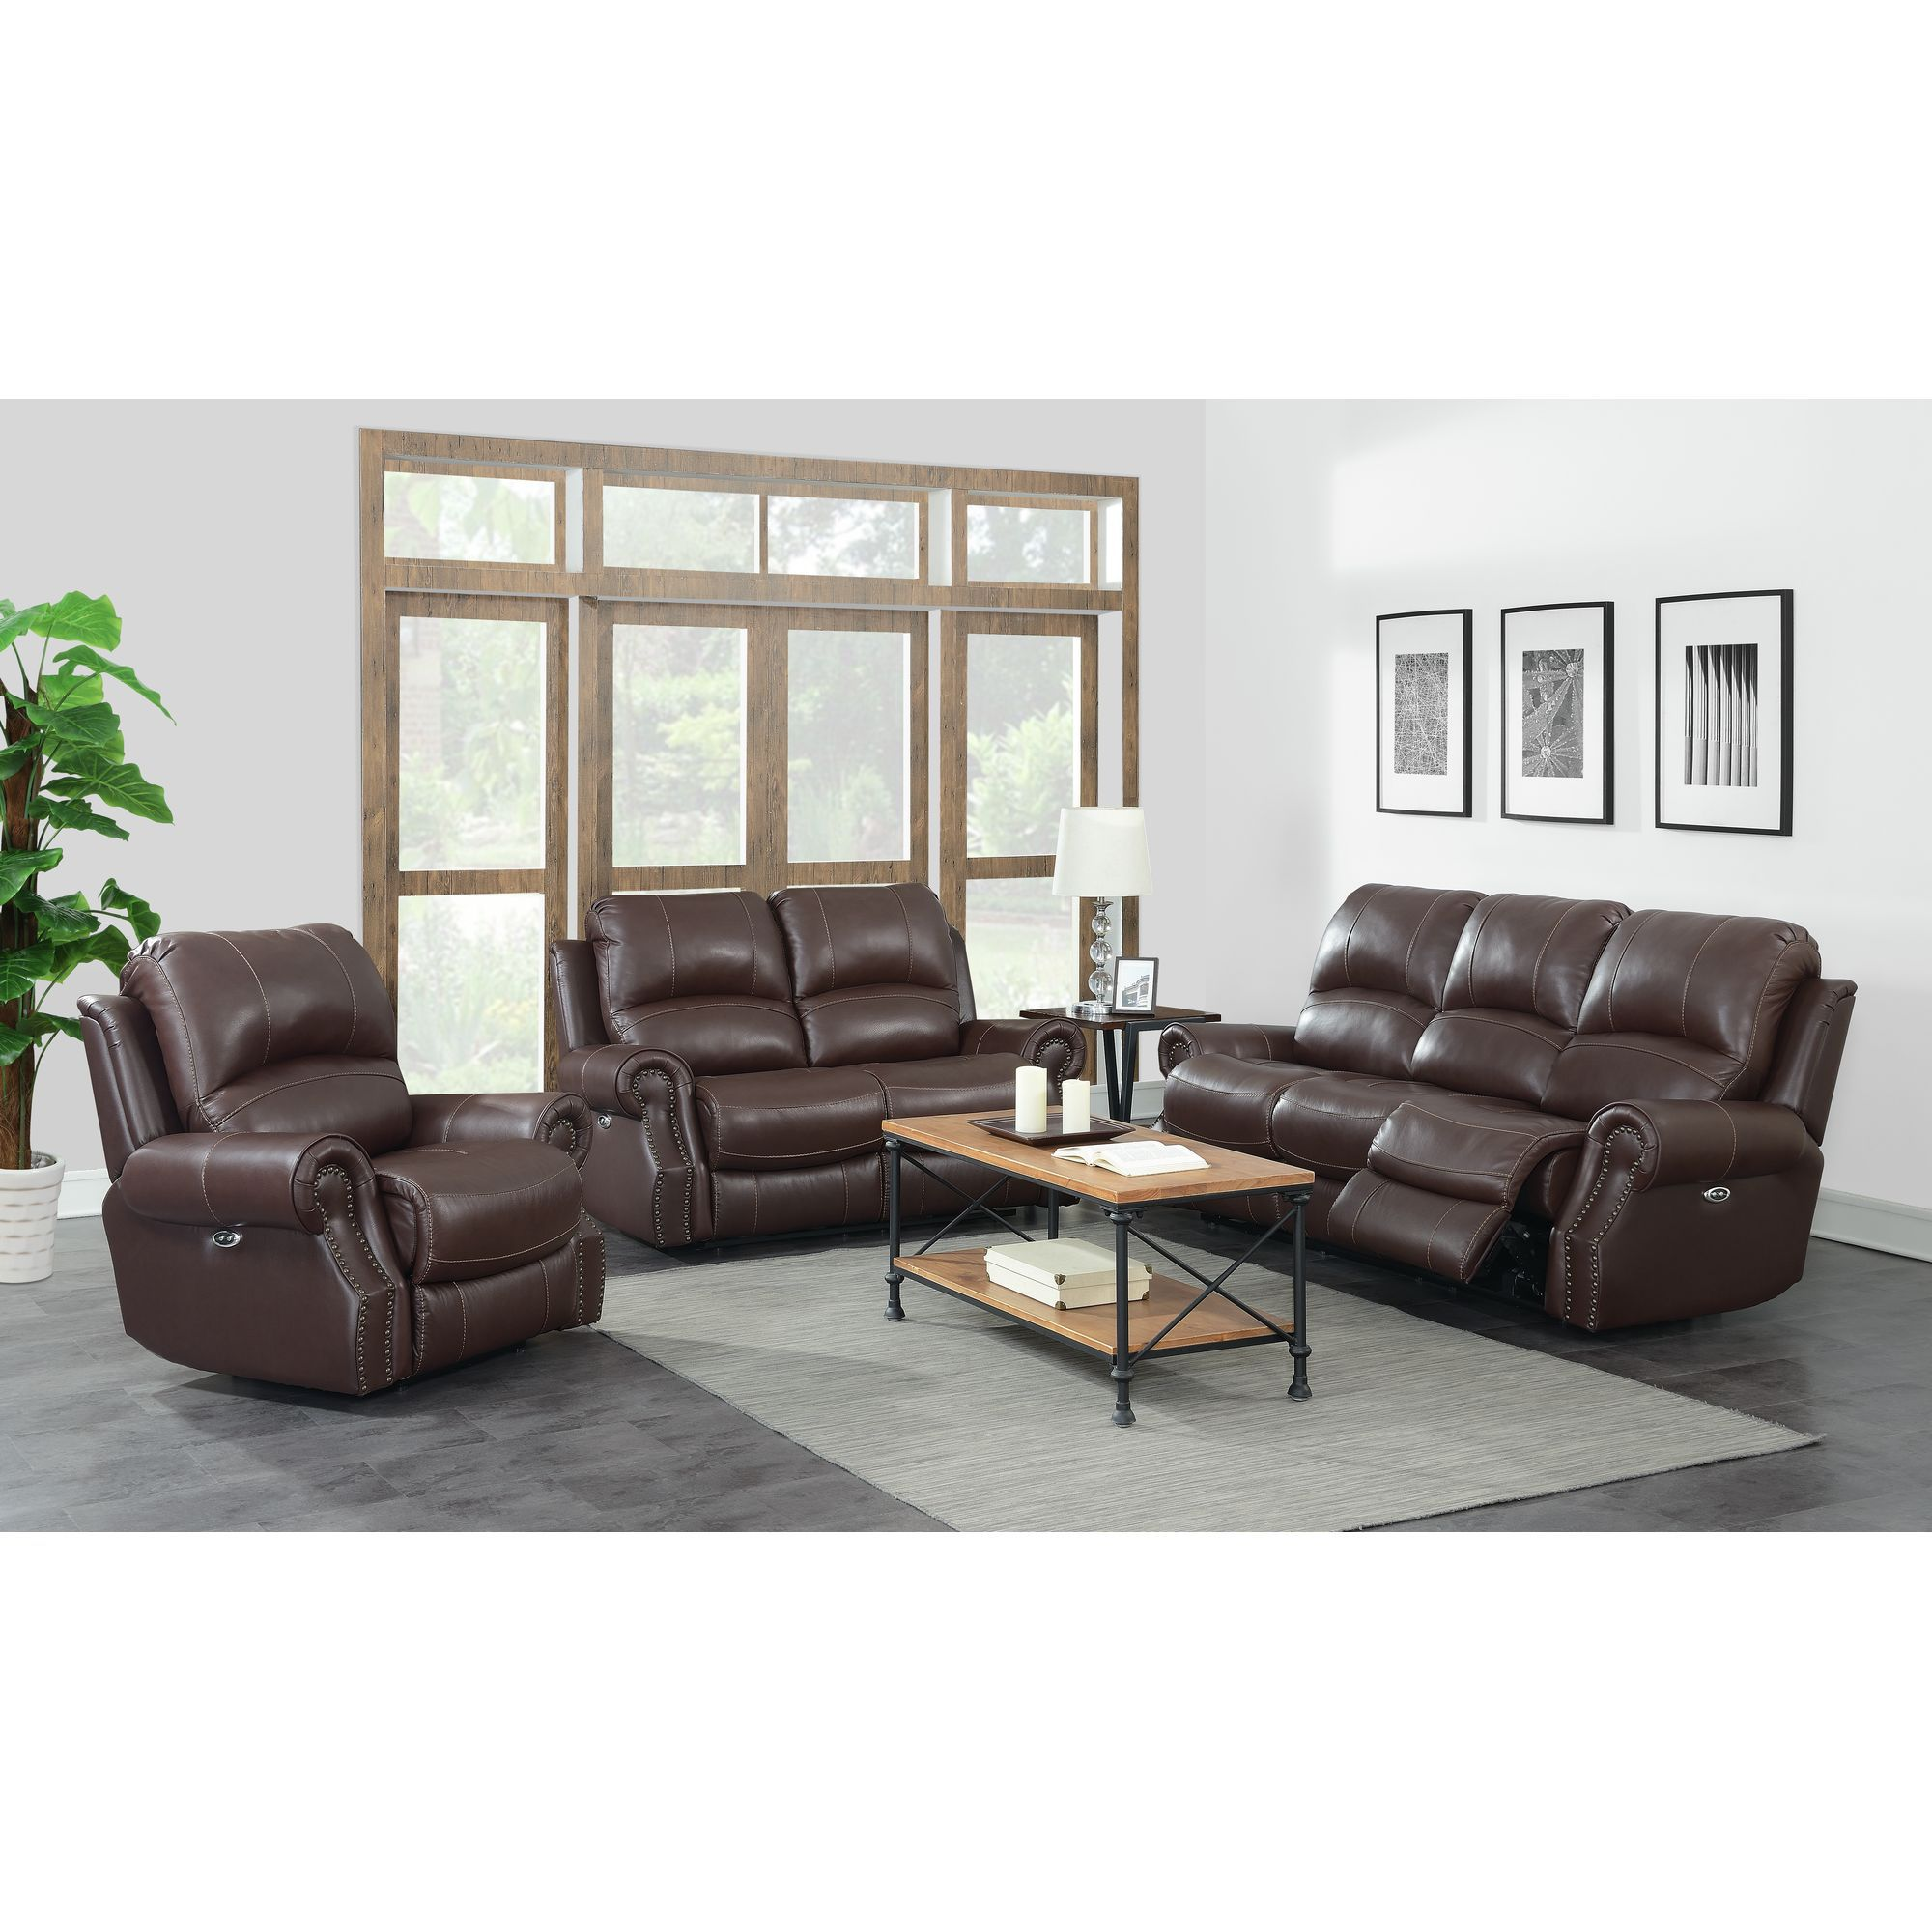 Emerson 3 Pc Power Motion Reclining Leather Living Room Set With Free White Glove Delivery